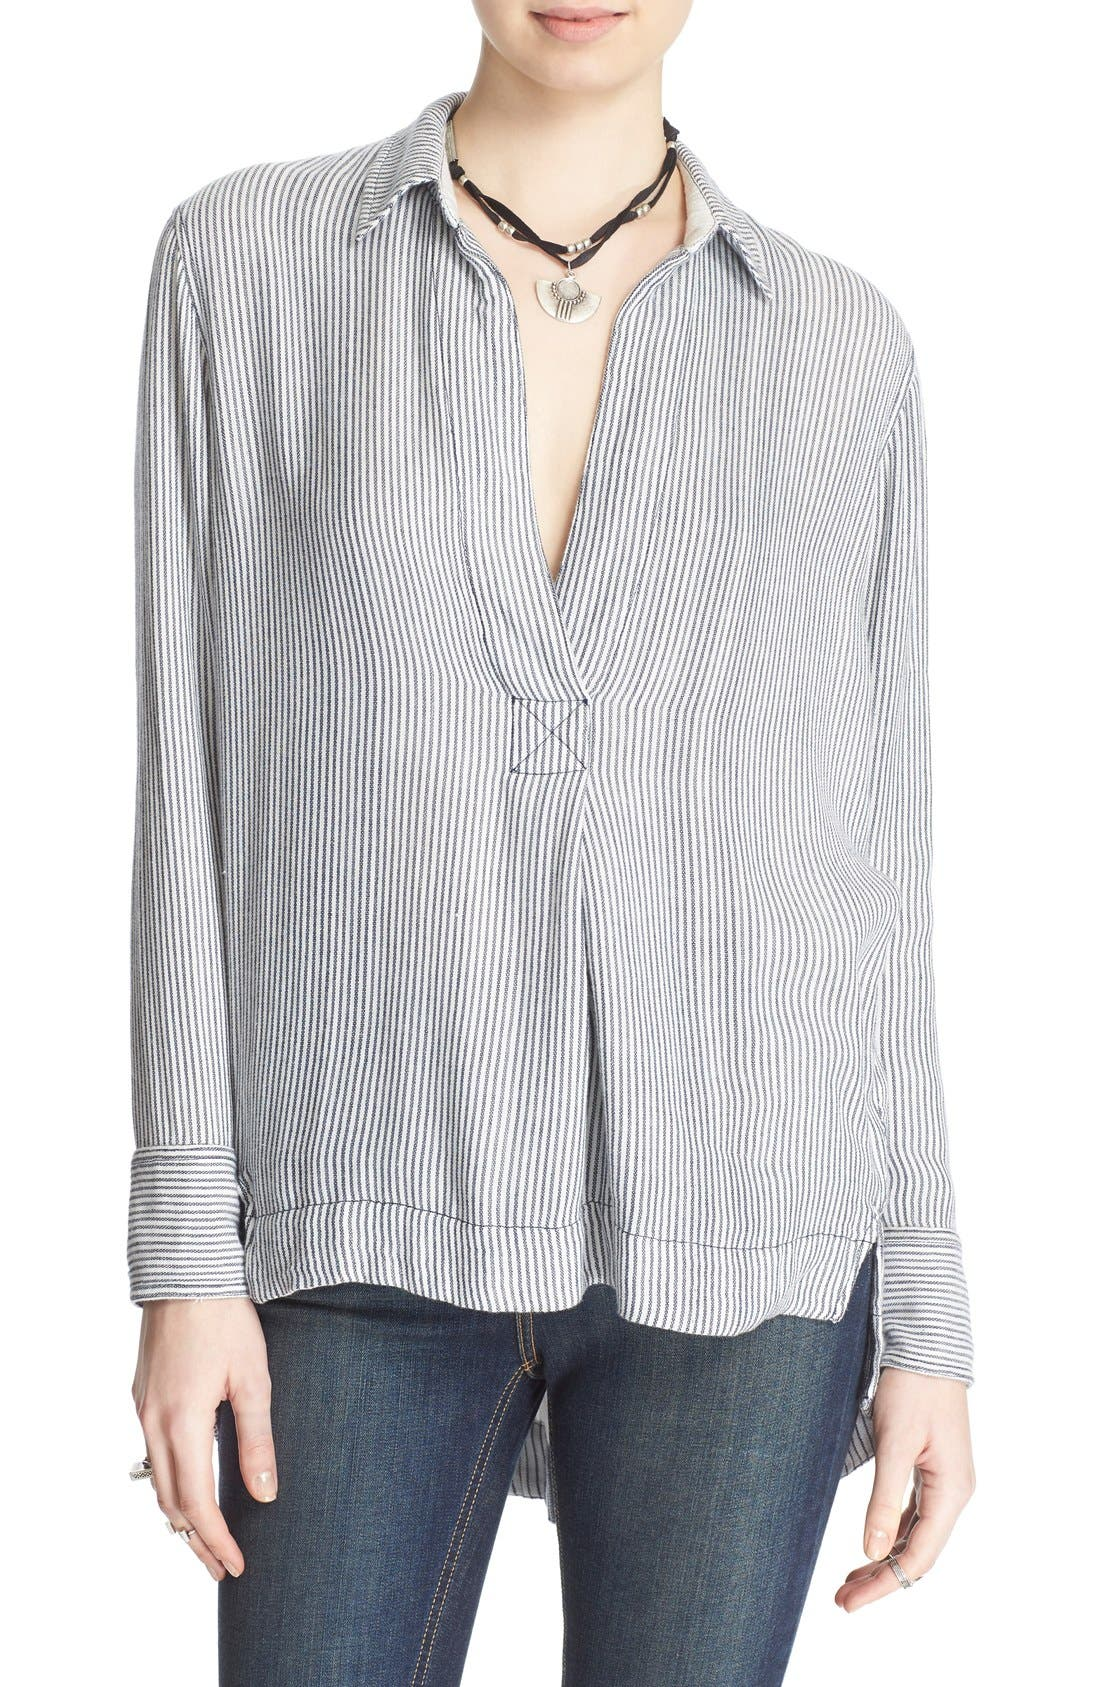 'On the Road' Stripe Tunic Top,                         Main,                         color, 020